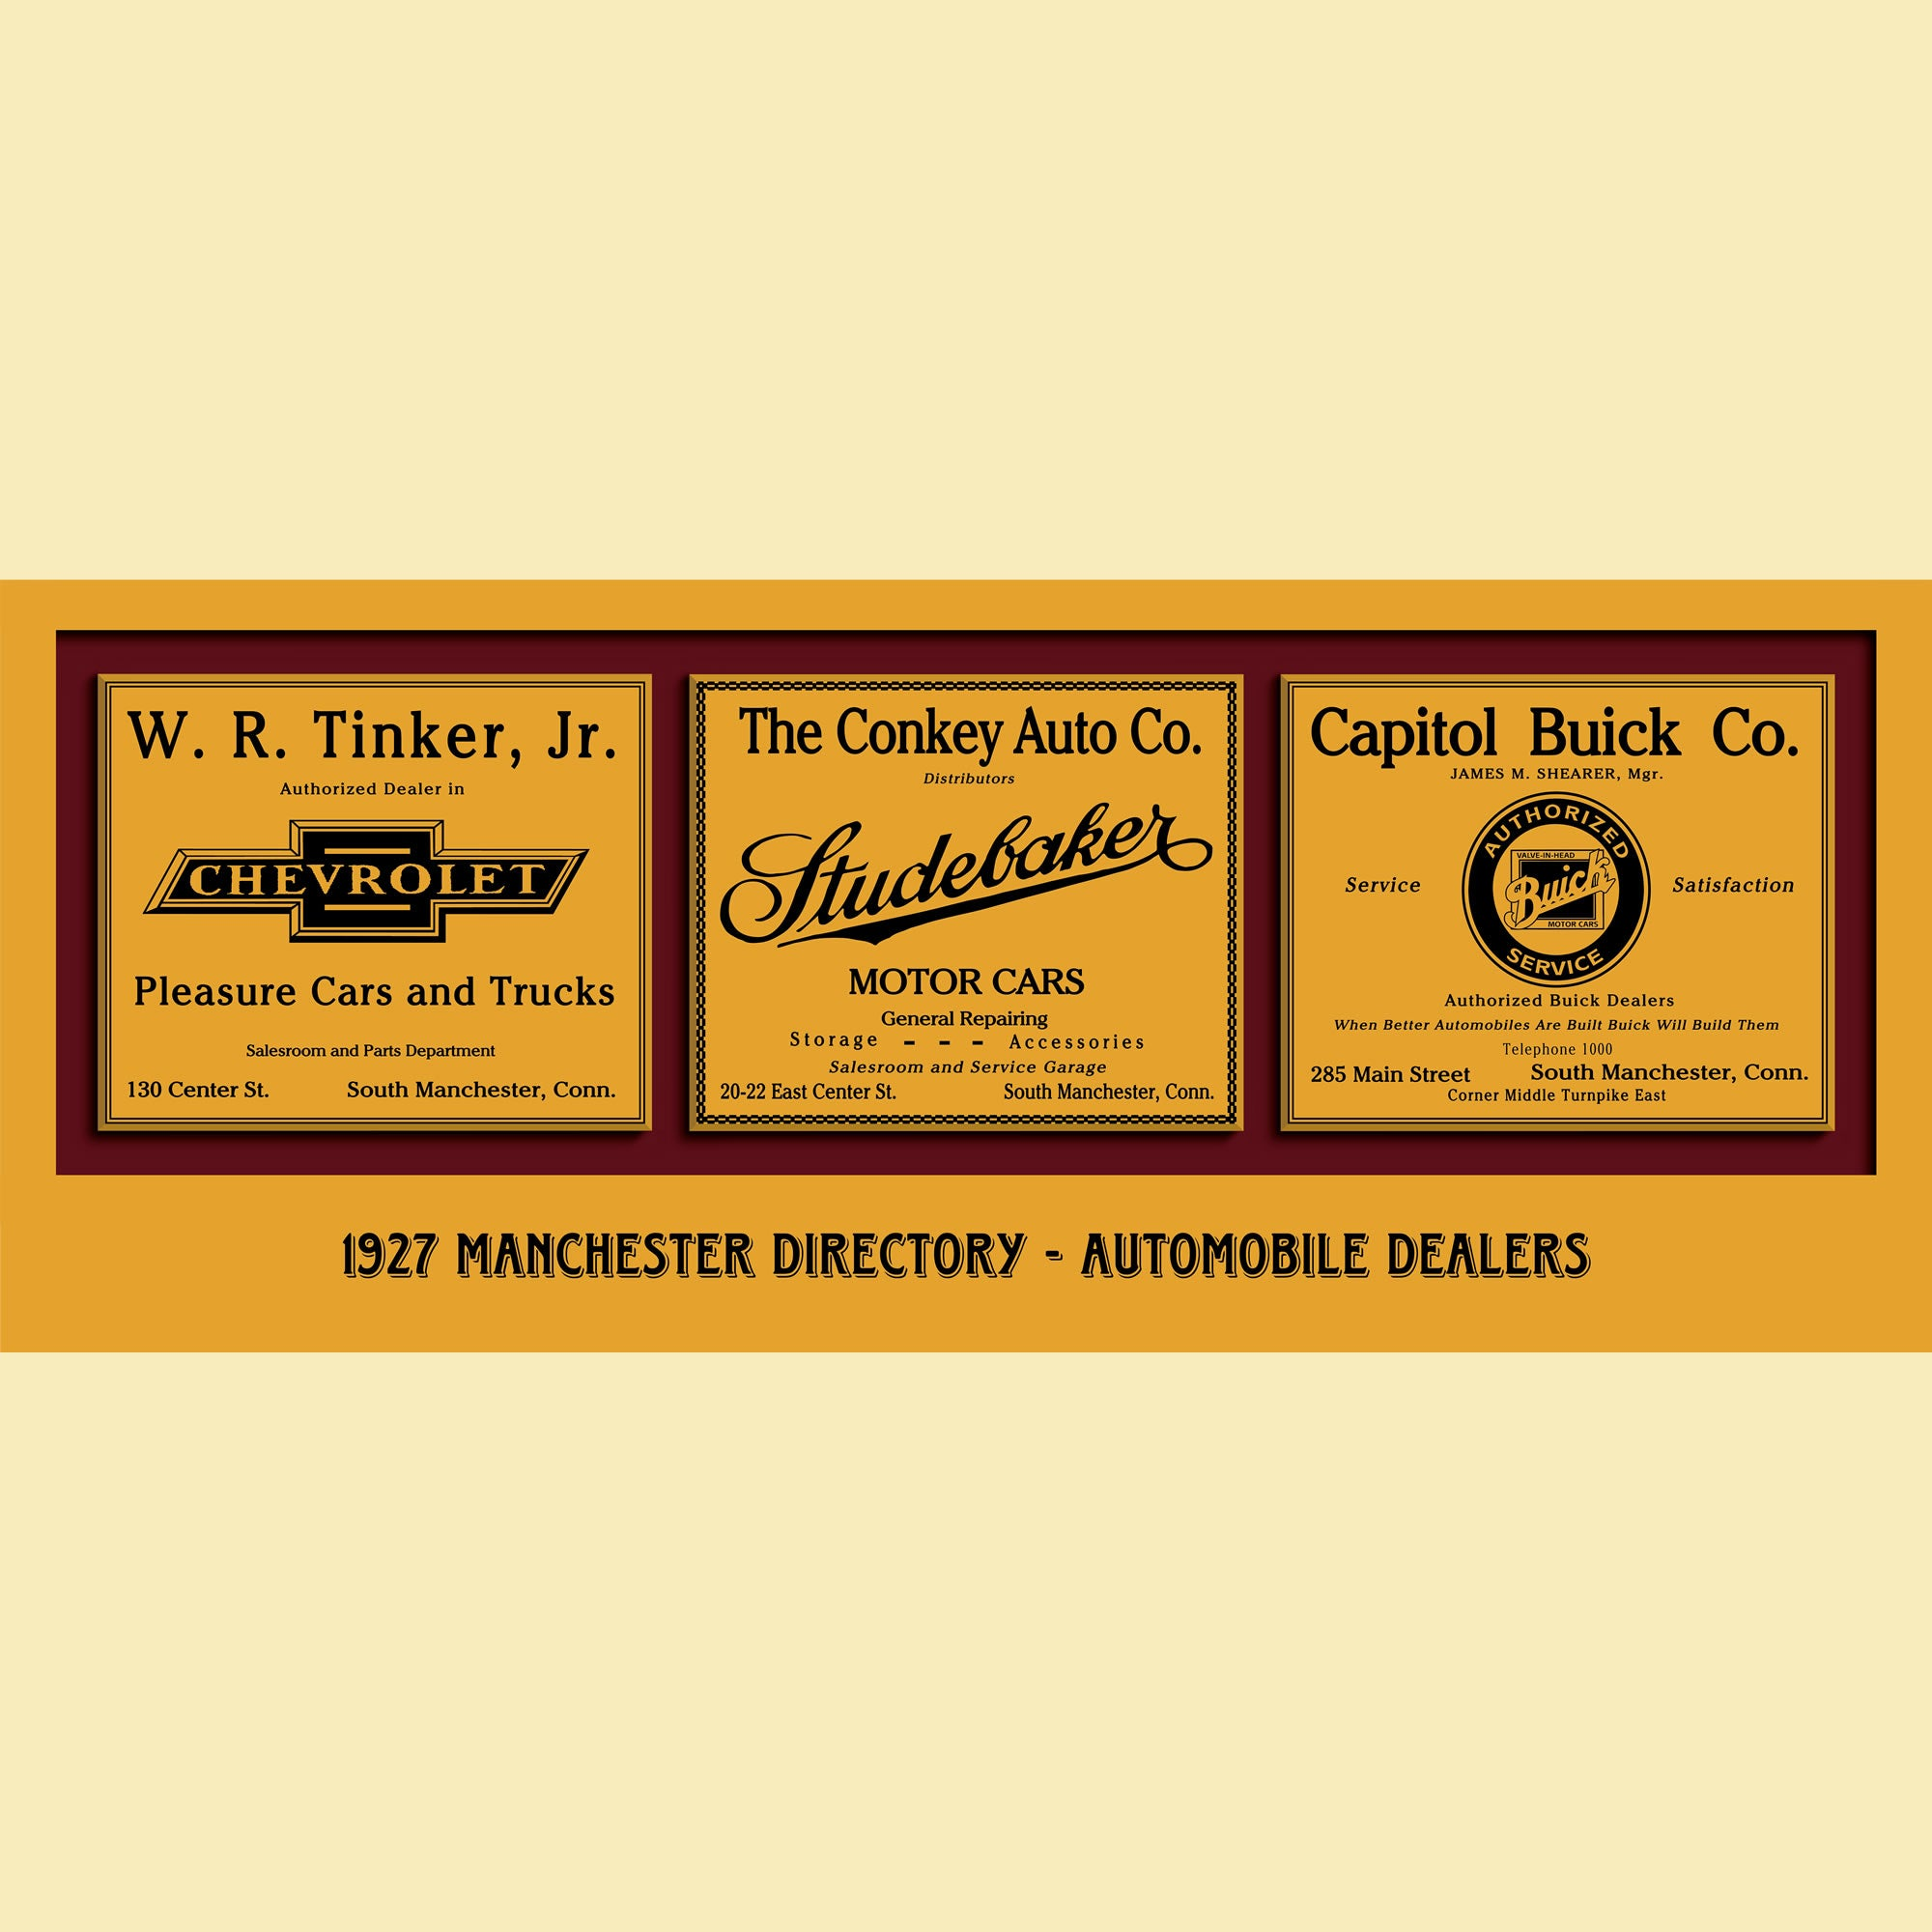 1927 Manchester Directory - Automobile Dealers